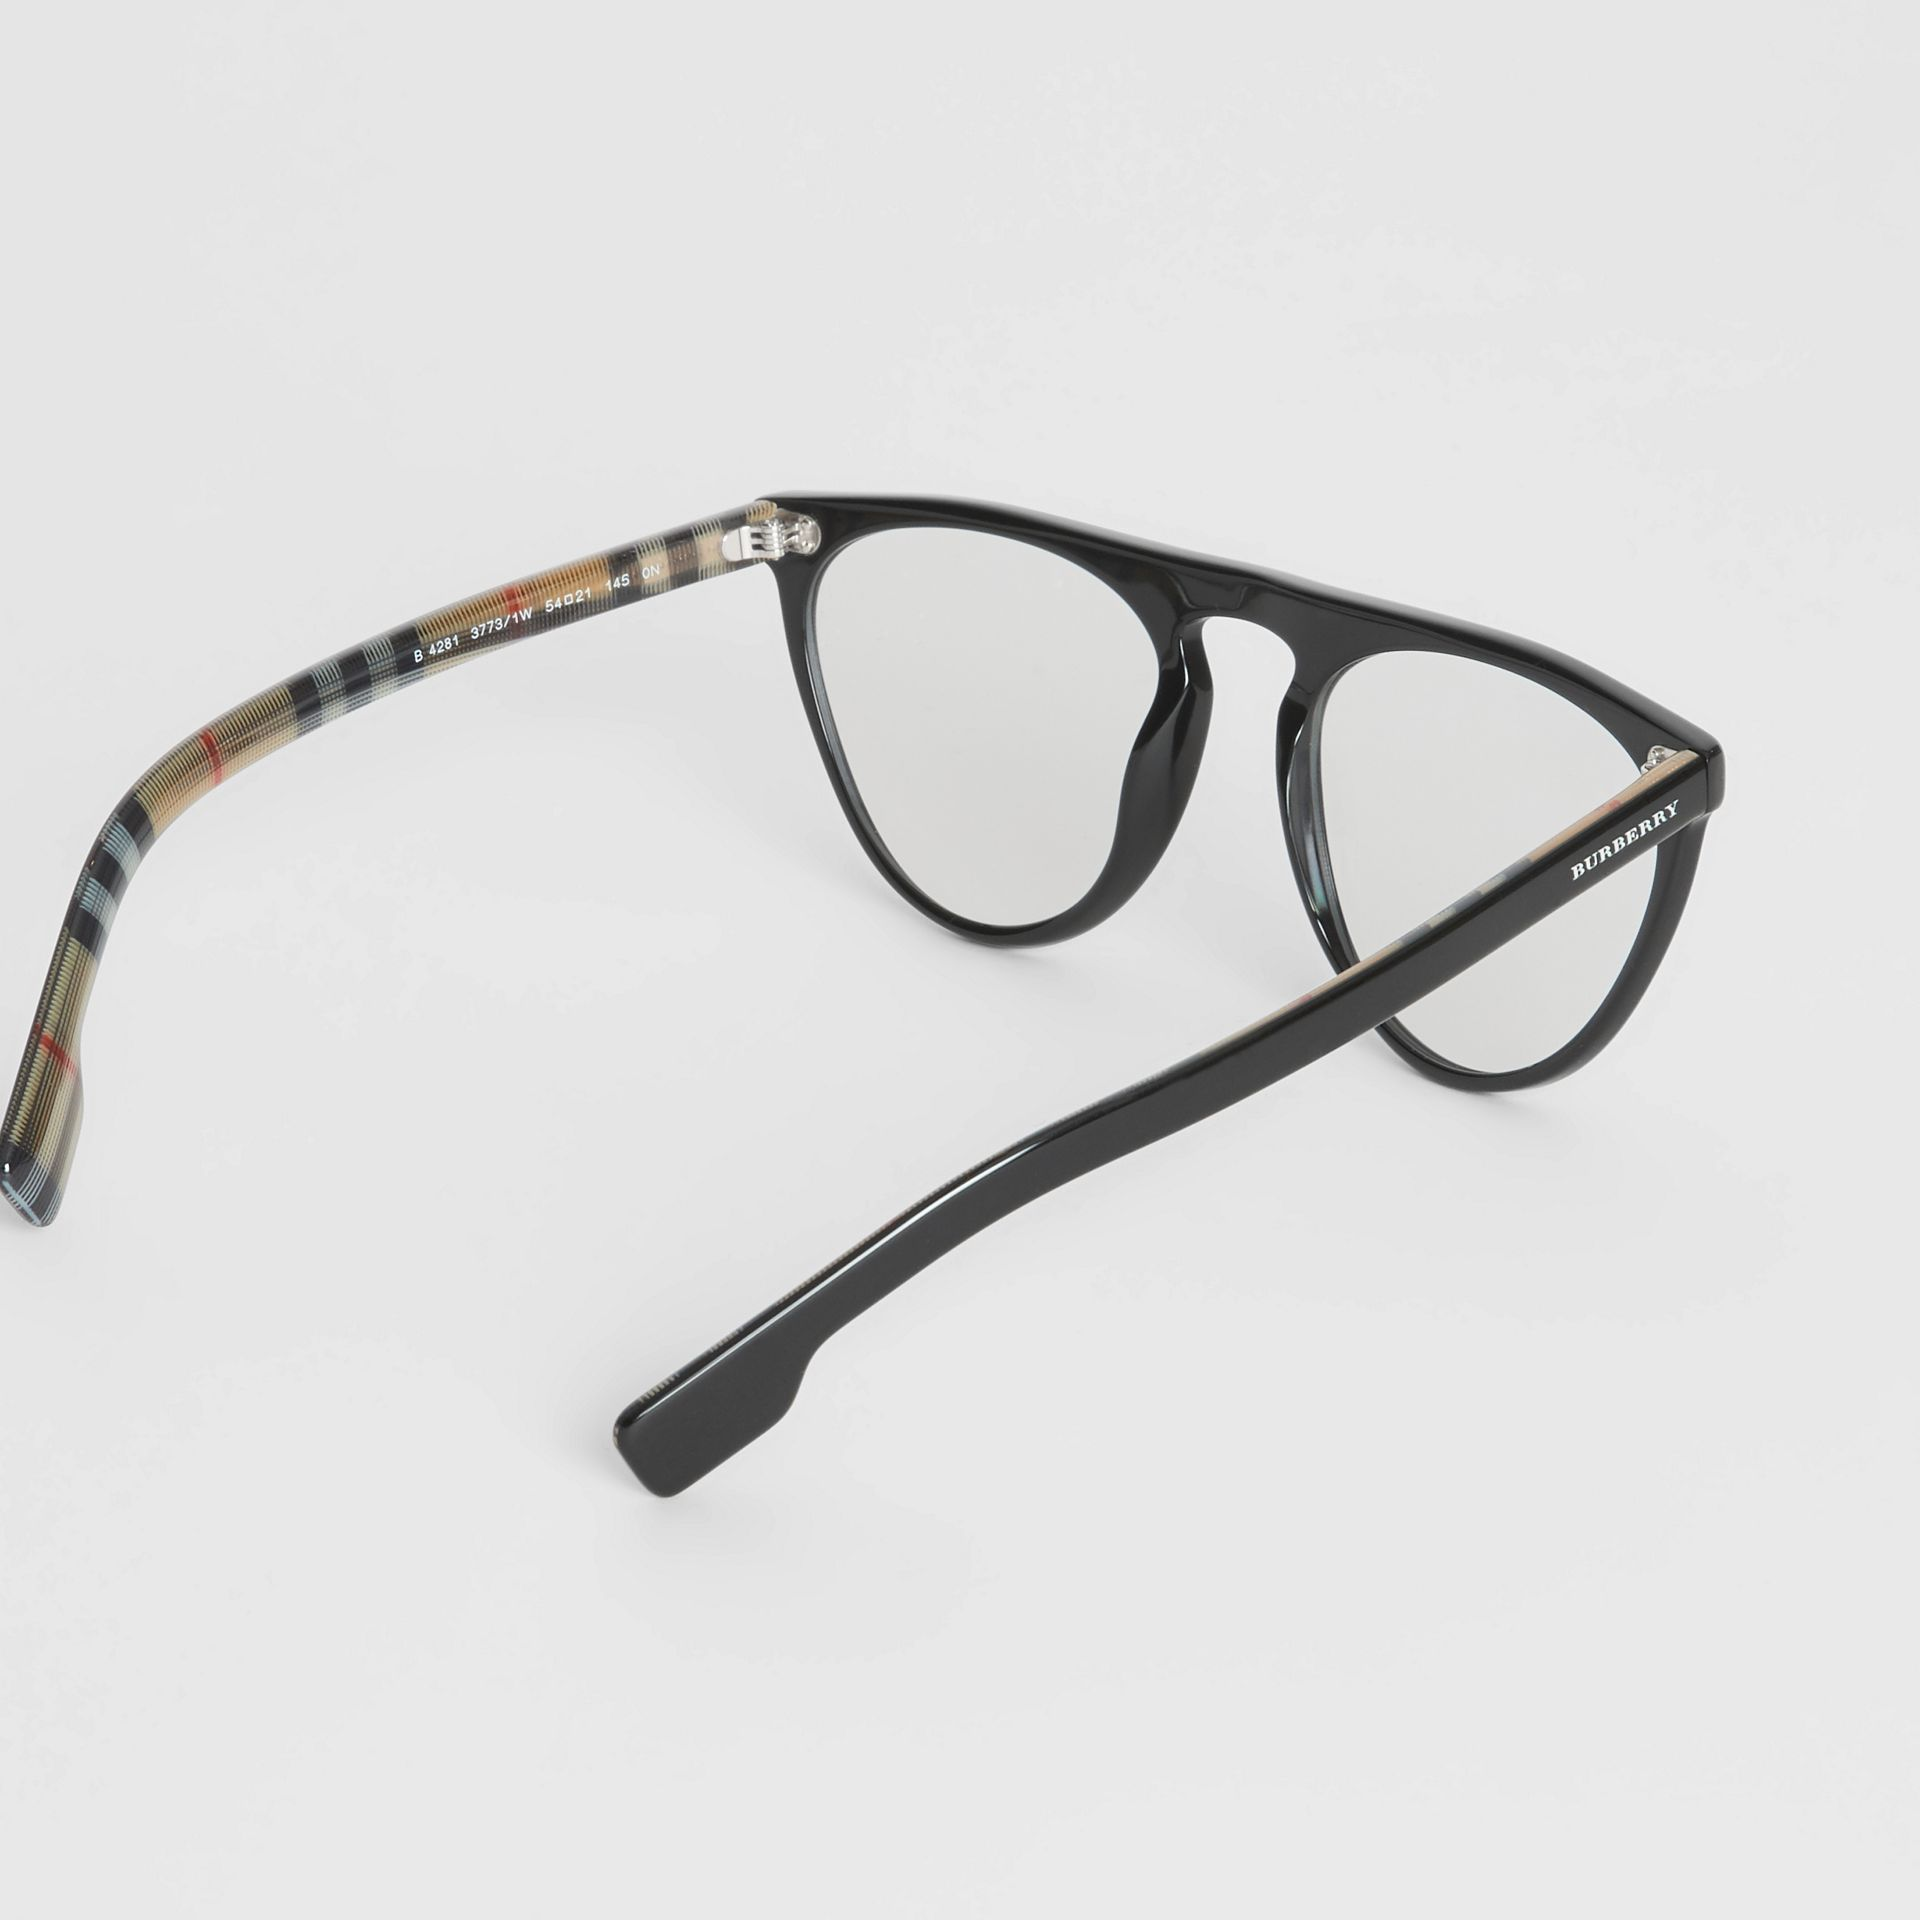 Keyhole D-shaped Optical Frames in Black - Men | Burberry - gallery image 4